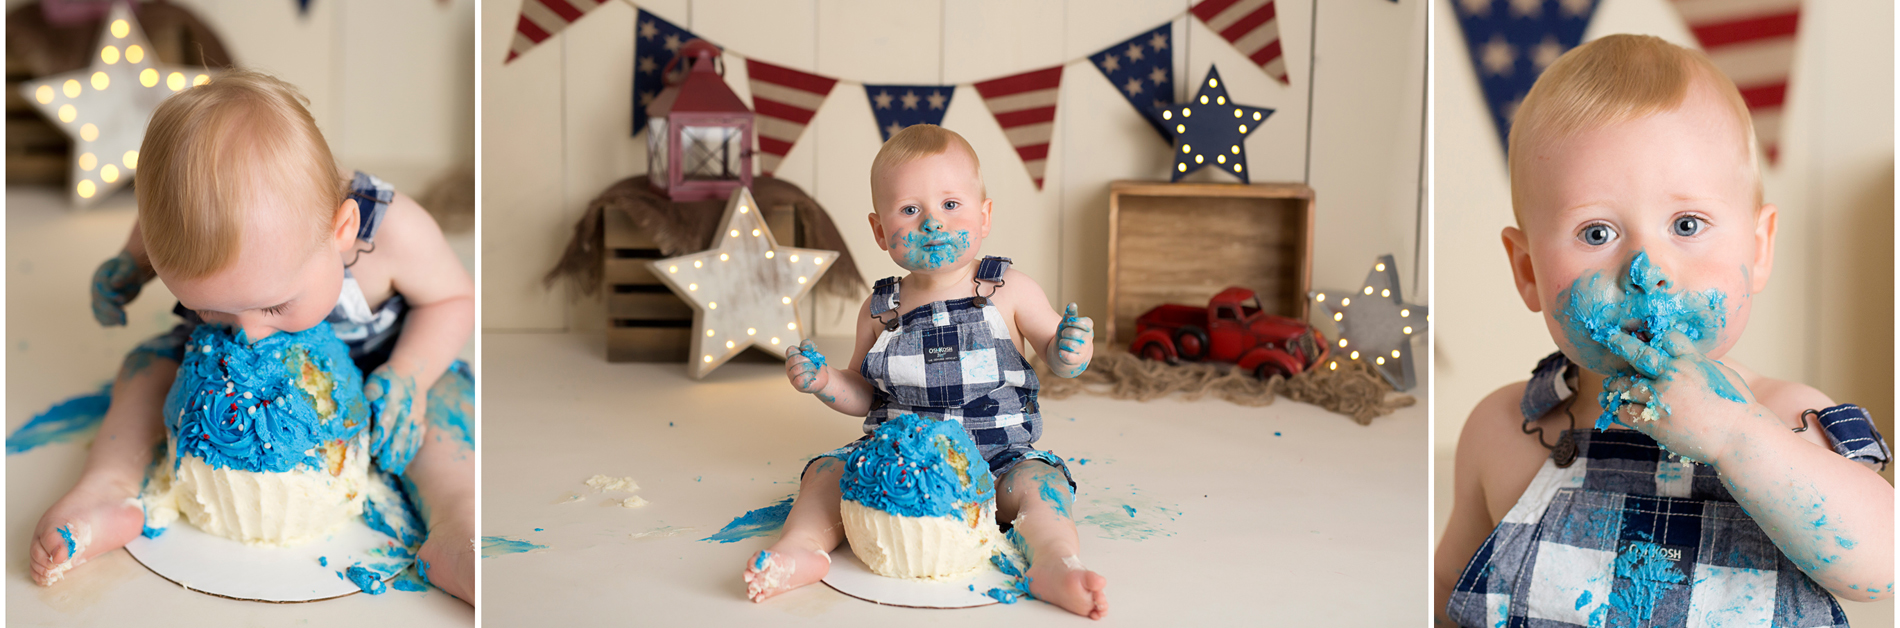 brighton howell michigan cake smash photographer one year photos south lyon 2